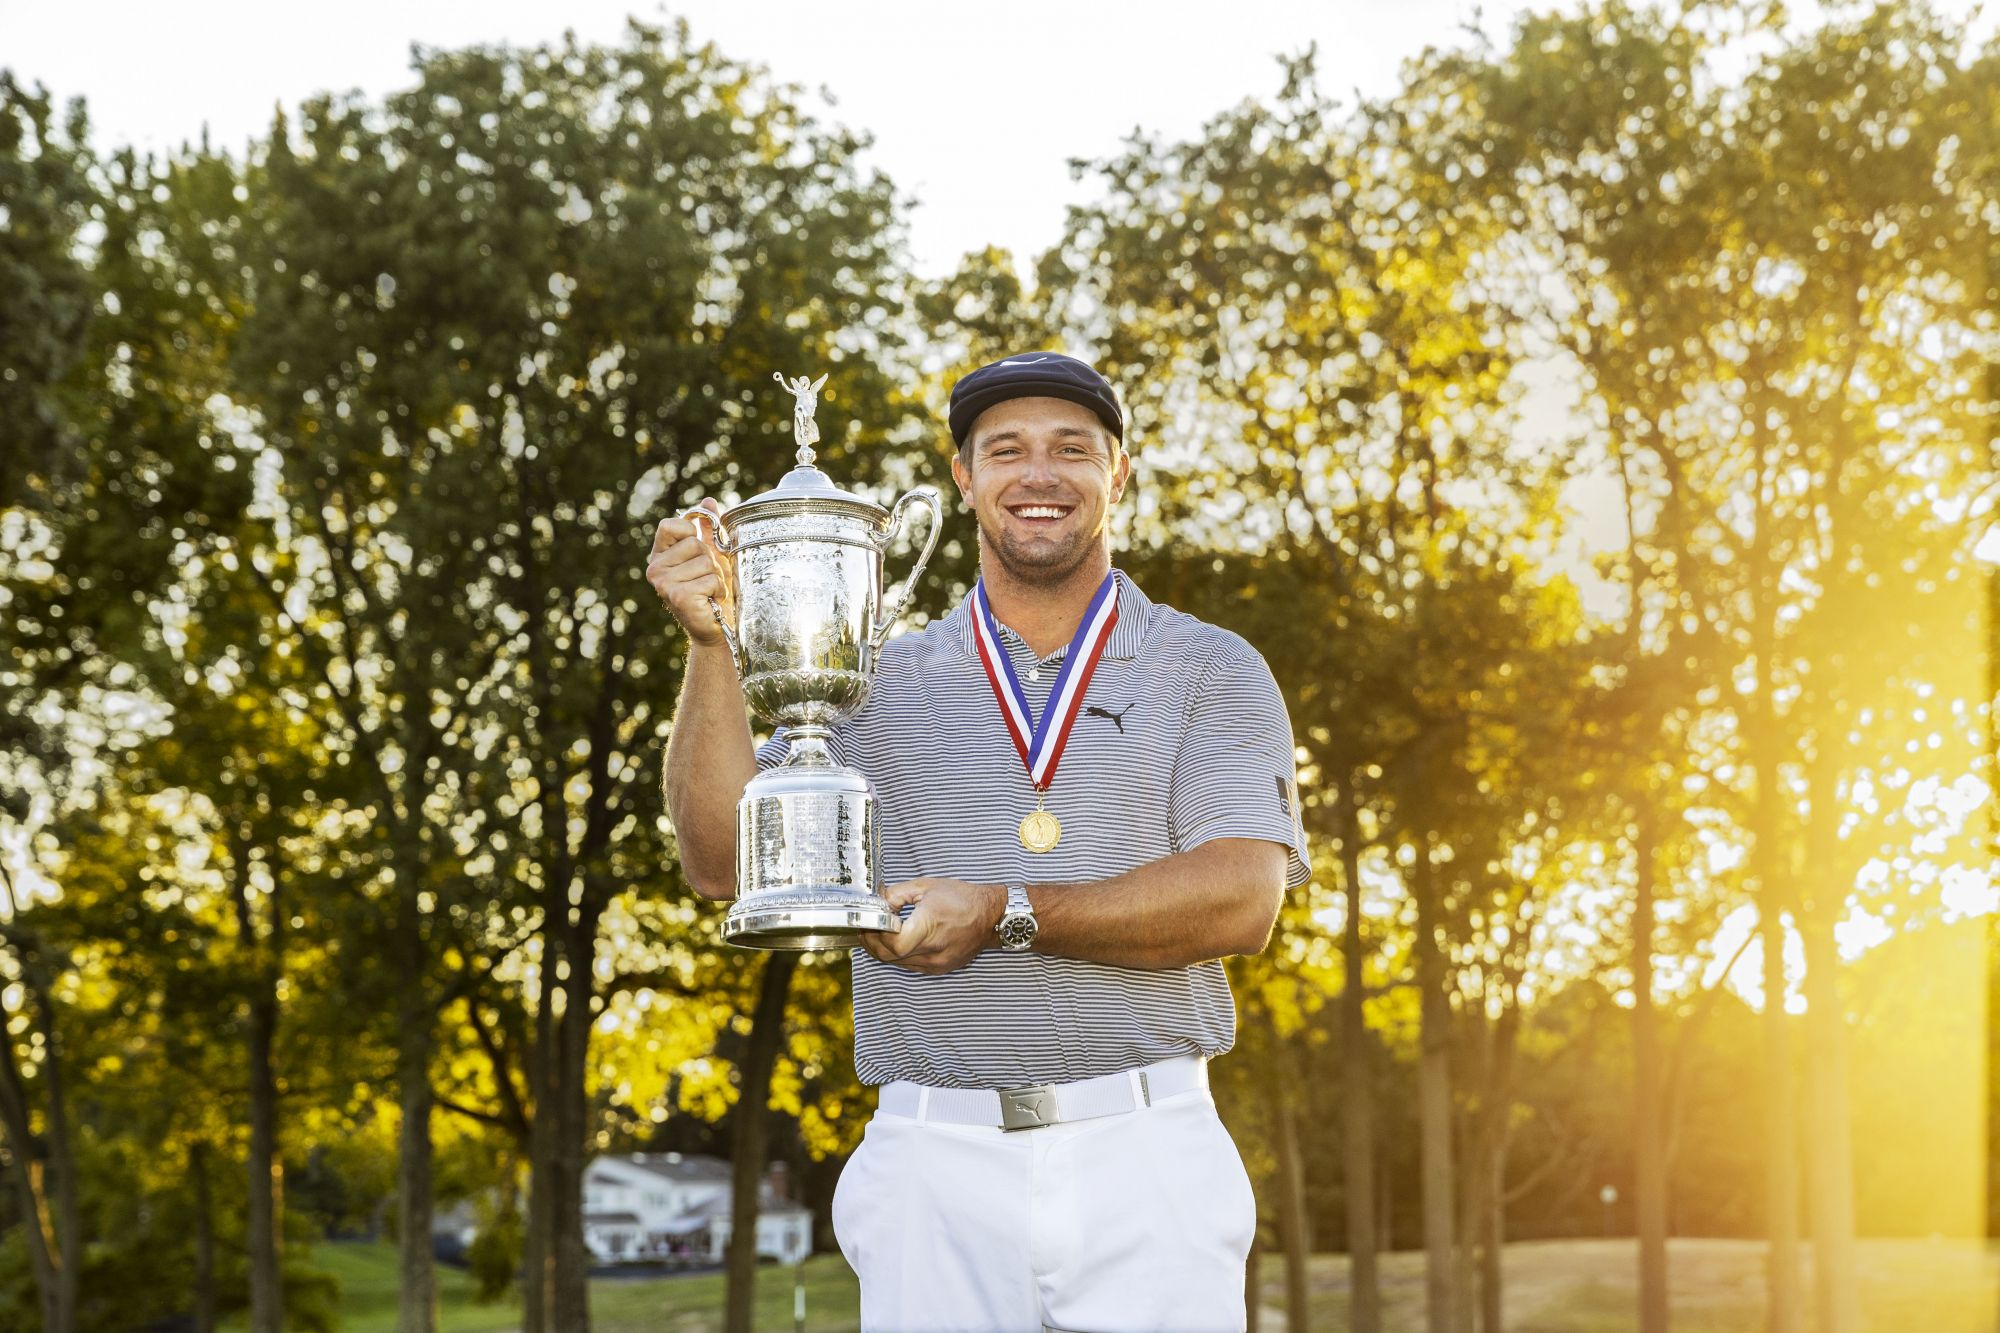 Bryson DeChambeau holds the U.S. Open trophy during the final round at the 2020 U.S. Open at Winged Foot Golf Club (West Course) in Mamaroneck, N.Y. on Sunday, Sept. 20, 2020. (Chris Keane/USGA)